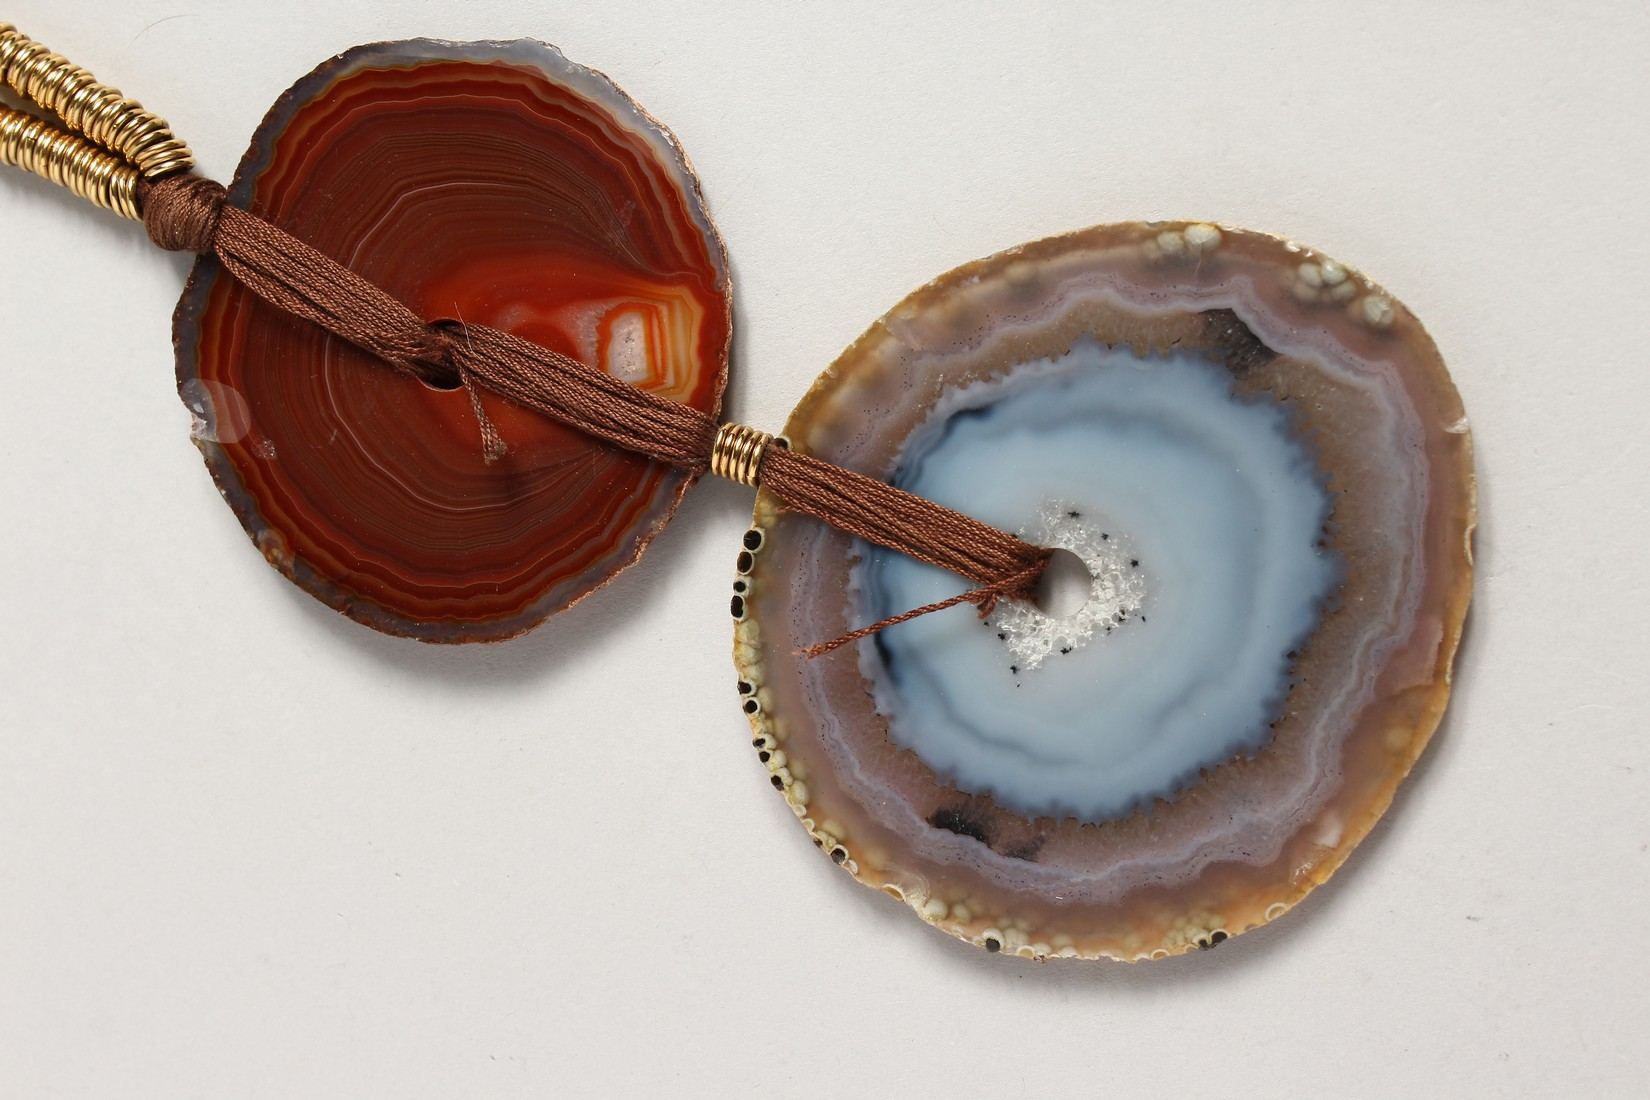 A YVES SAINT LAURENT AGATE NECKLALCE - Image 4 of 4